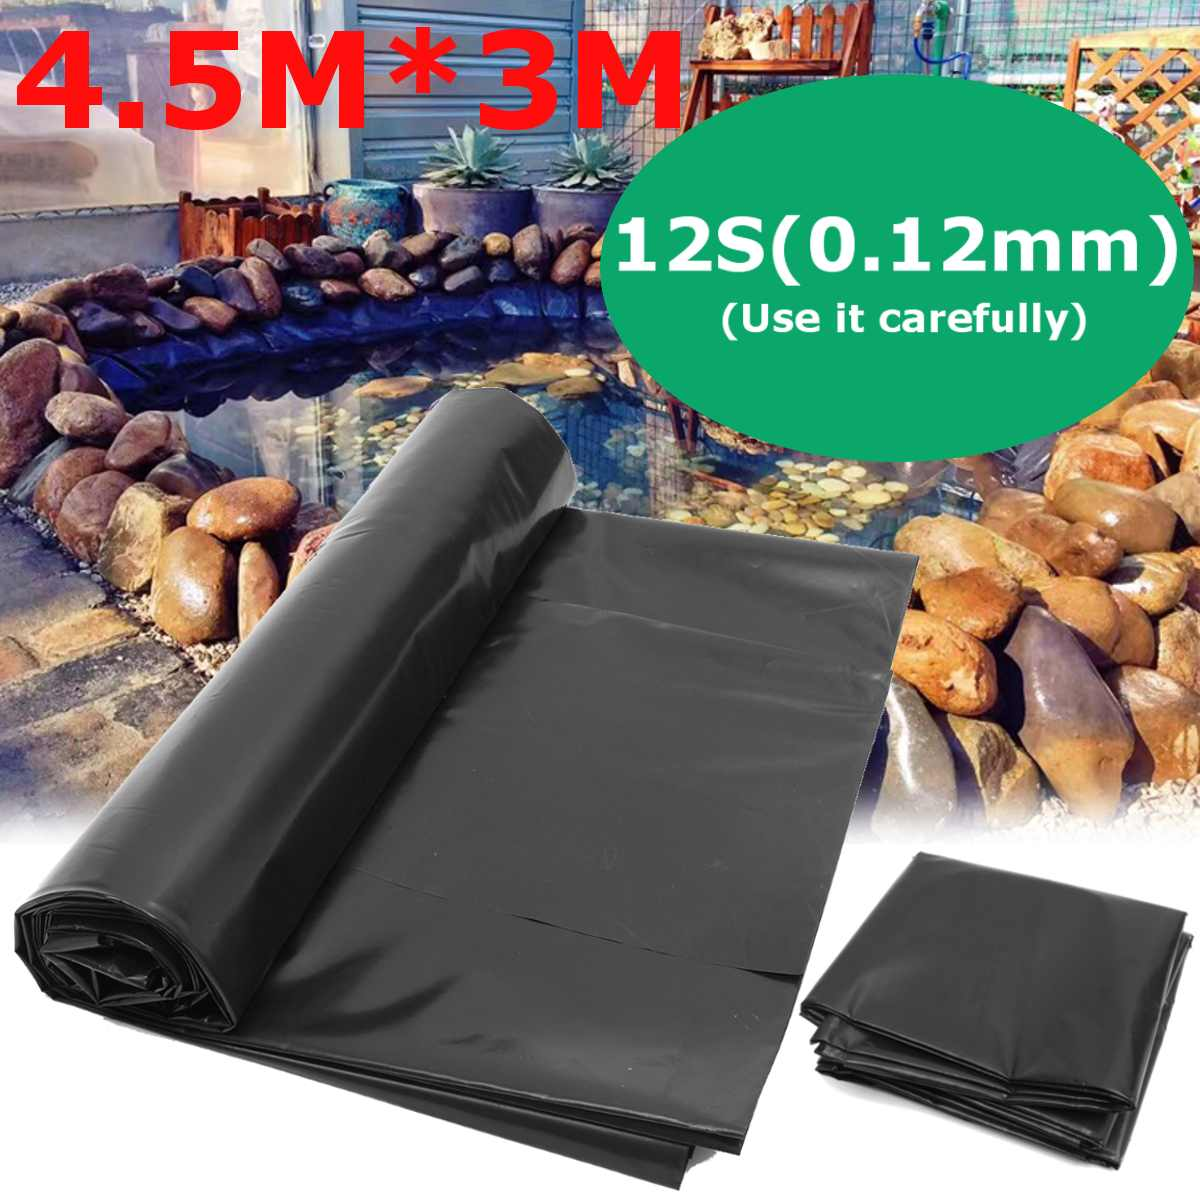 4.5X3M Fish Pond Liner Cloth Home Garden Pool Reinforced HDPE Heavy   Landscaping Pool Pond Waterproof Liner Cloth Black